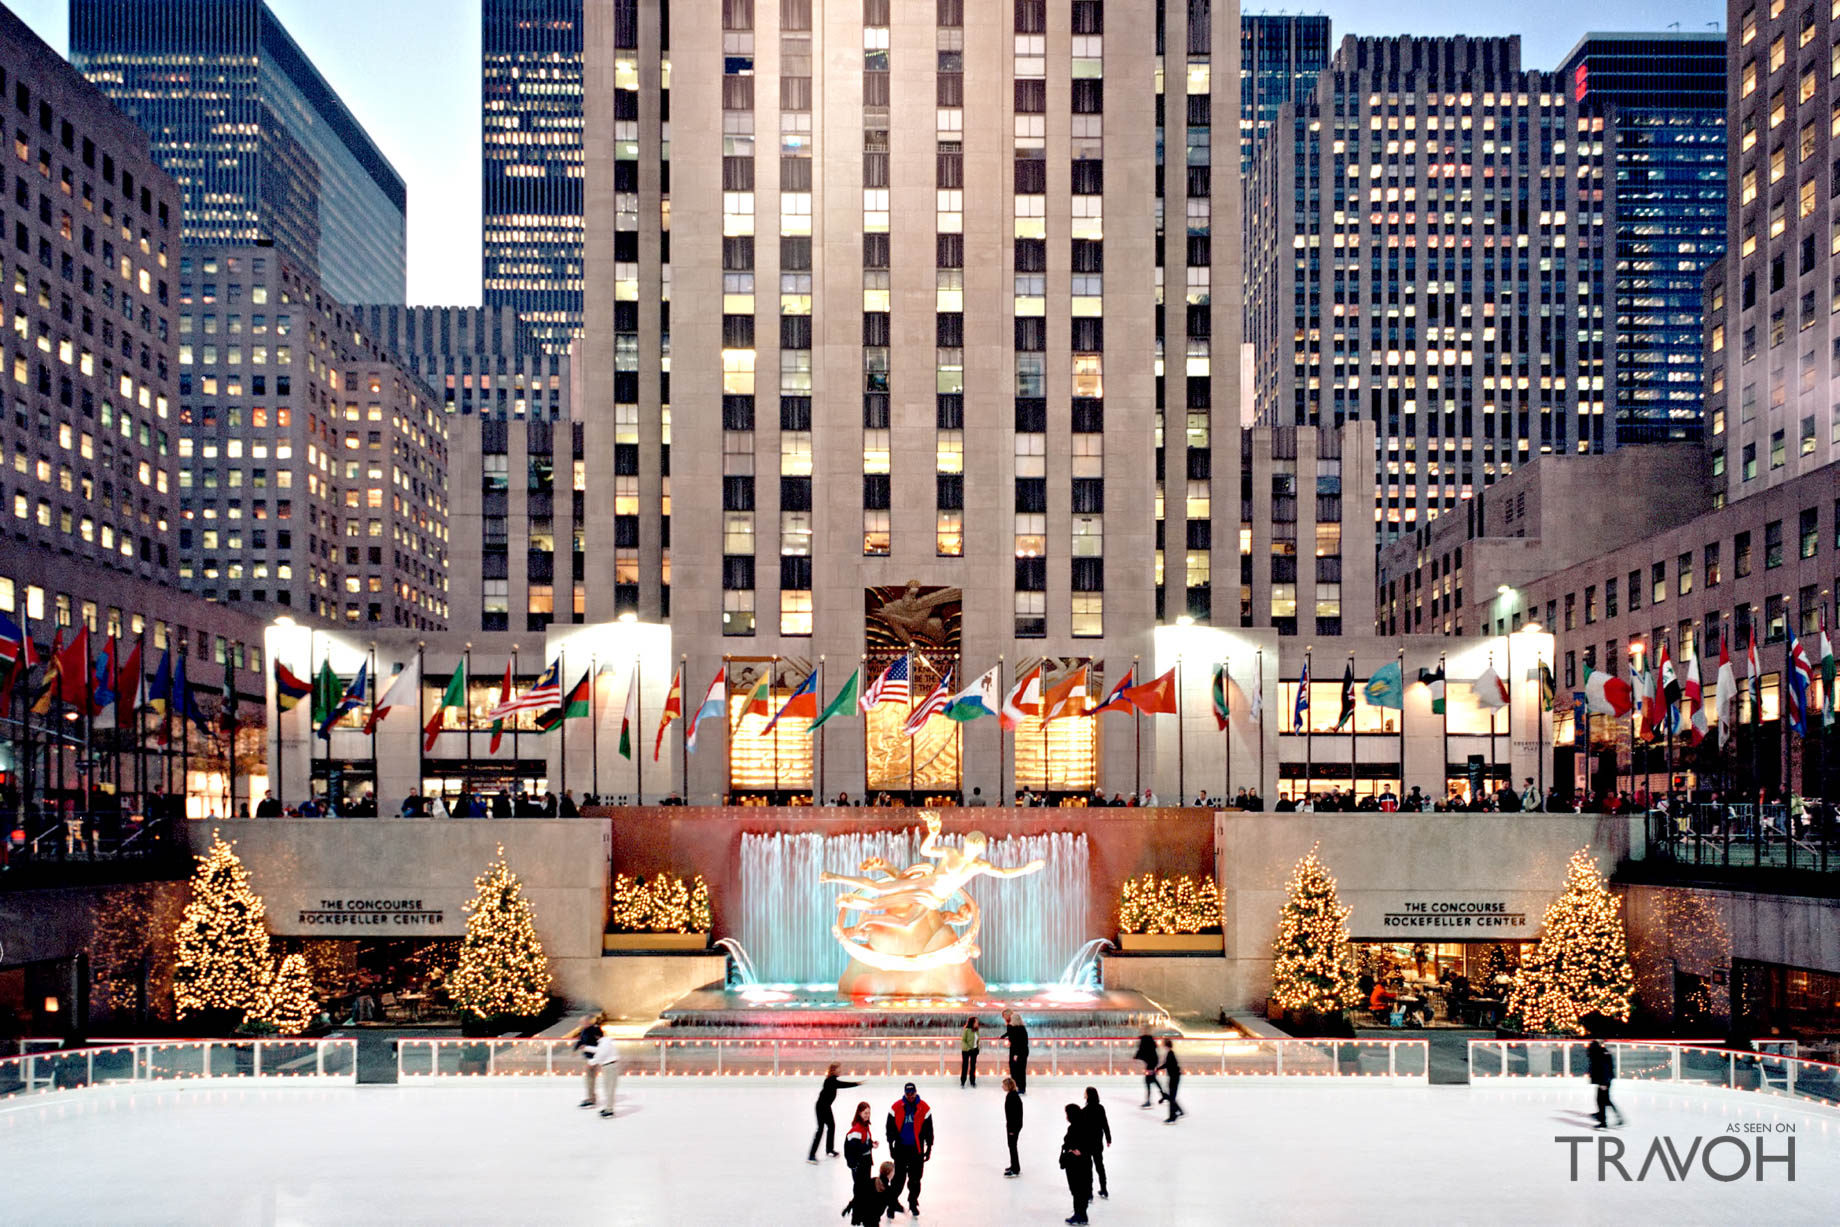 The Rink at Rockefeller Center - 600 5th Ave, New York, NY, USA